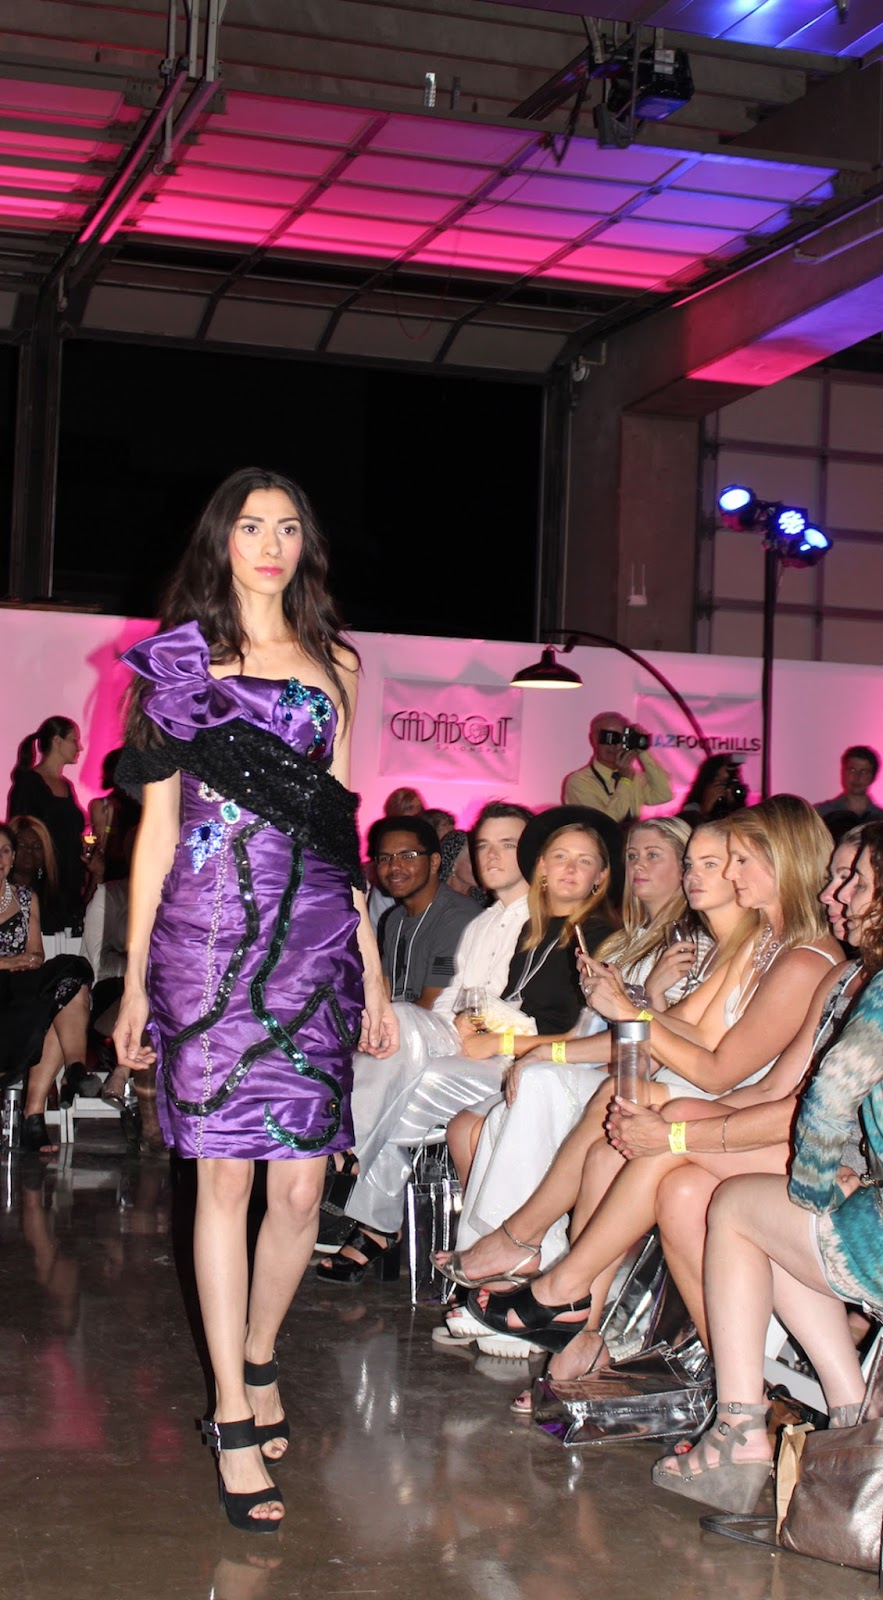 This mode is walking down the runway in a purple bejeweled dress with black detailing.